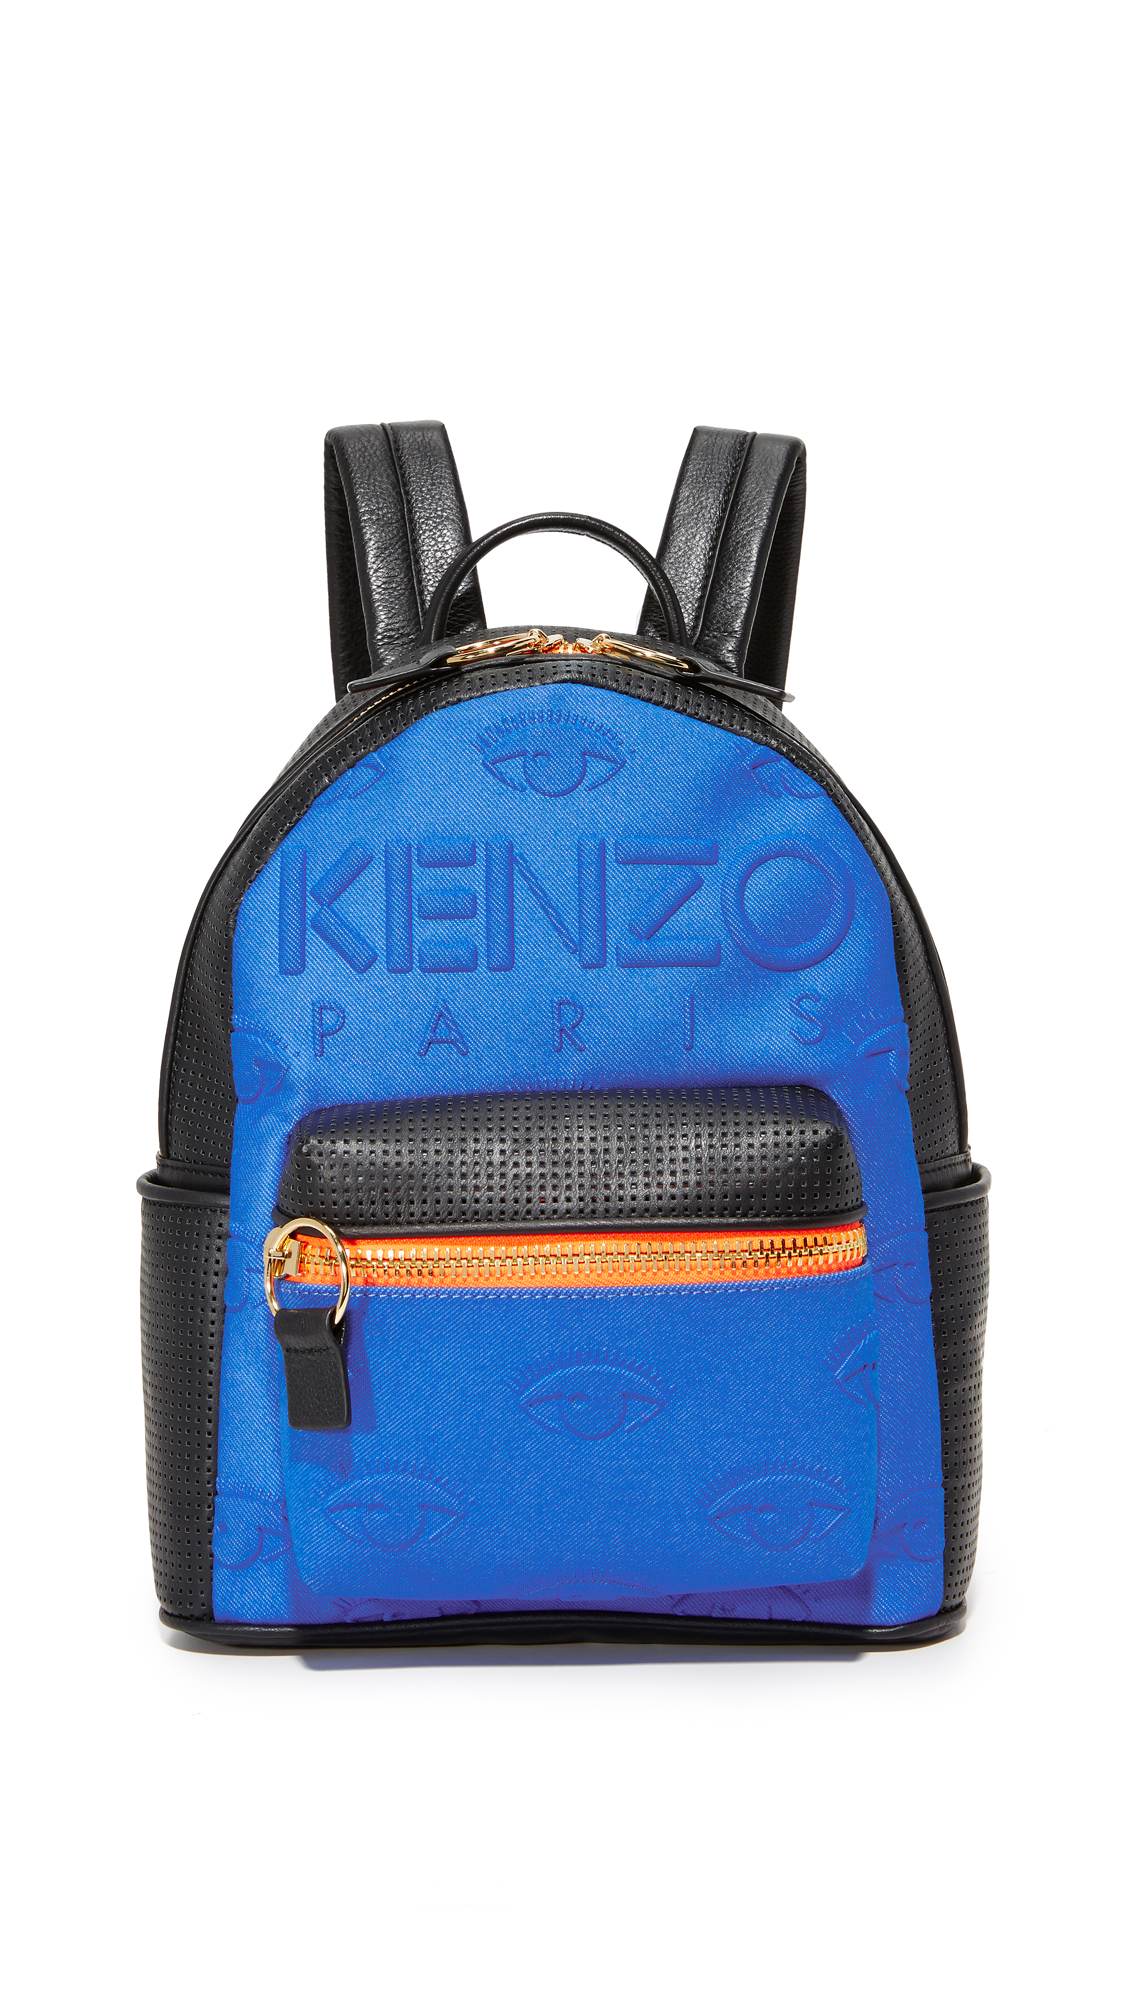 A colorful KENZO backpack in a mix of padded neoprene and perforated leather. Zip front pocket and slim side pockets. The wraparound top zip opens to a lined interior with 3 pockets. Locker loop and adjustable shoulder